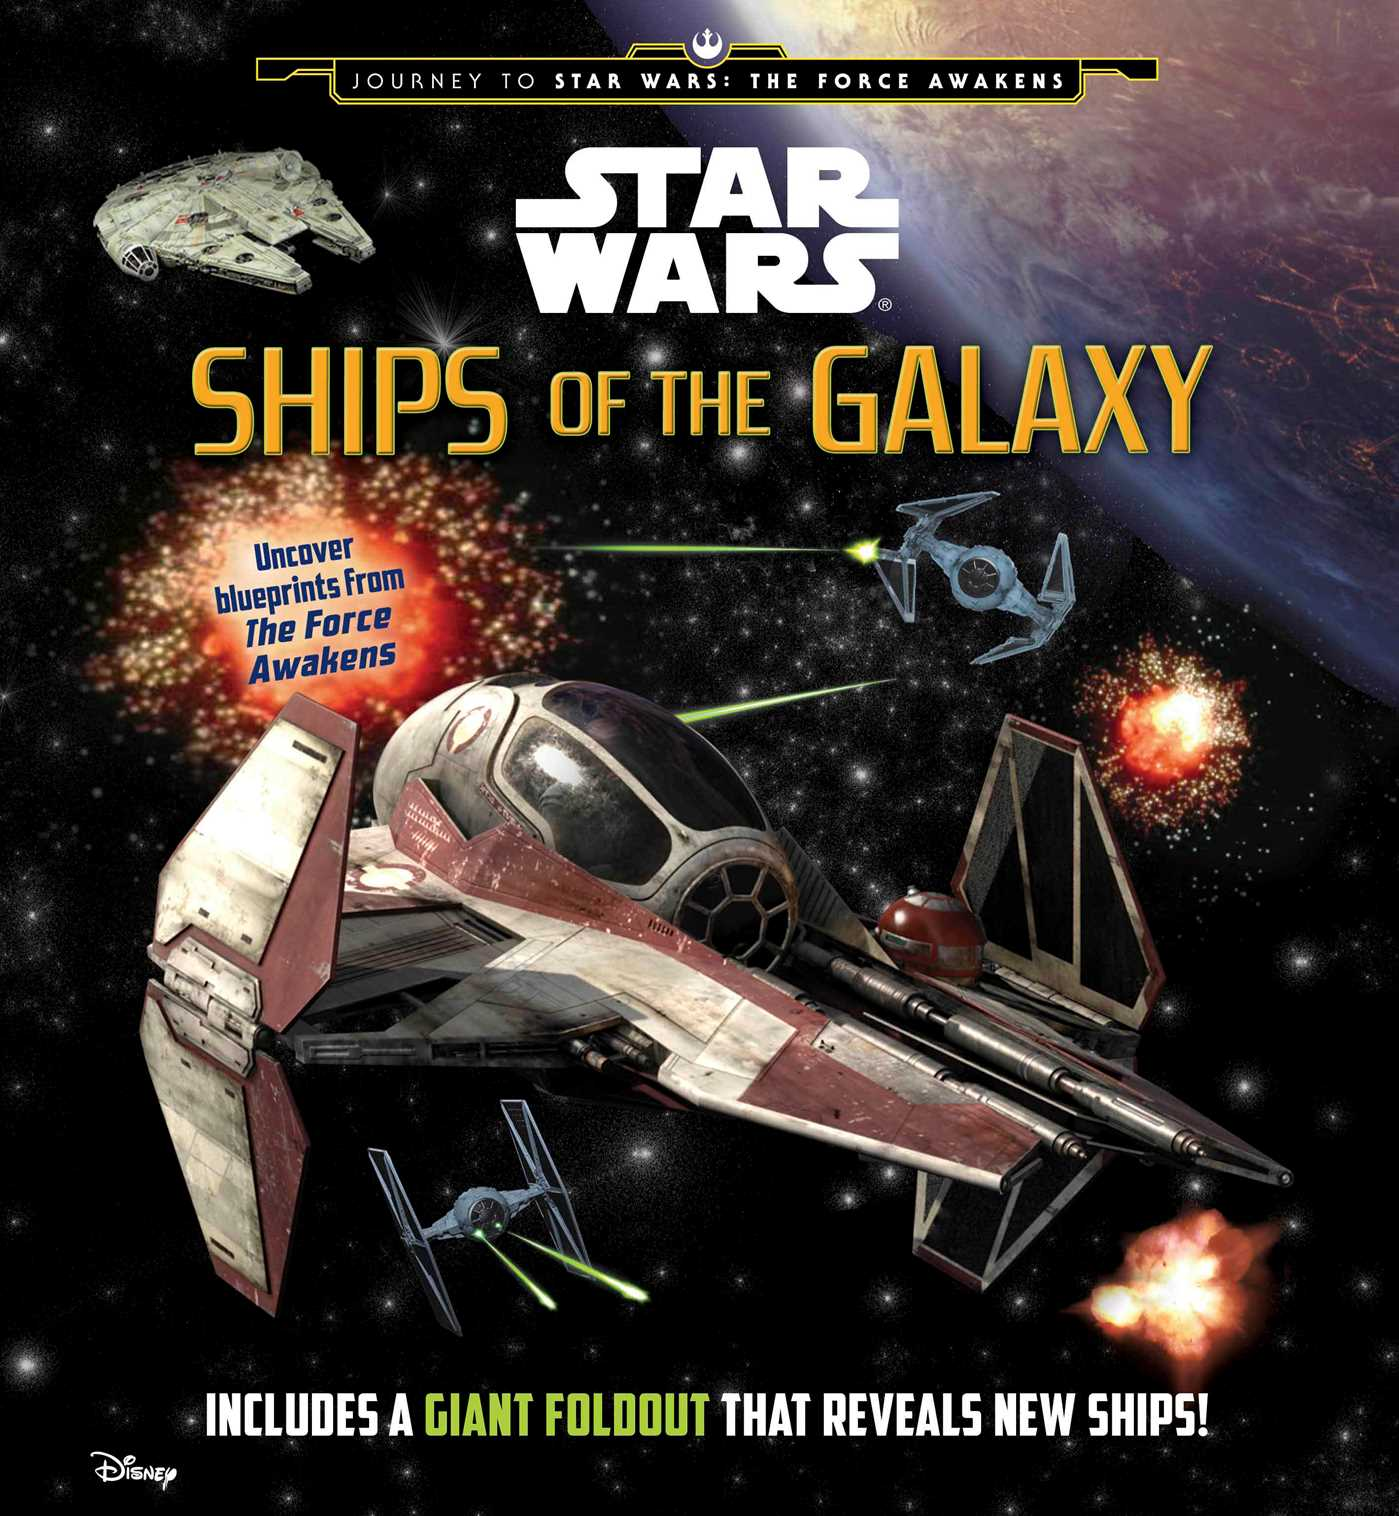 Star wars ships of the galaxy 9780794434779 hr